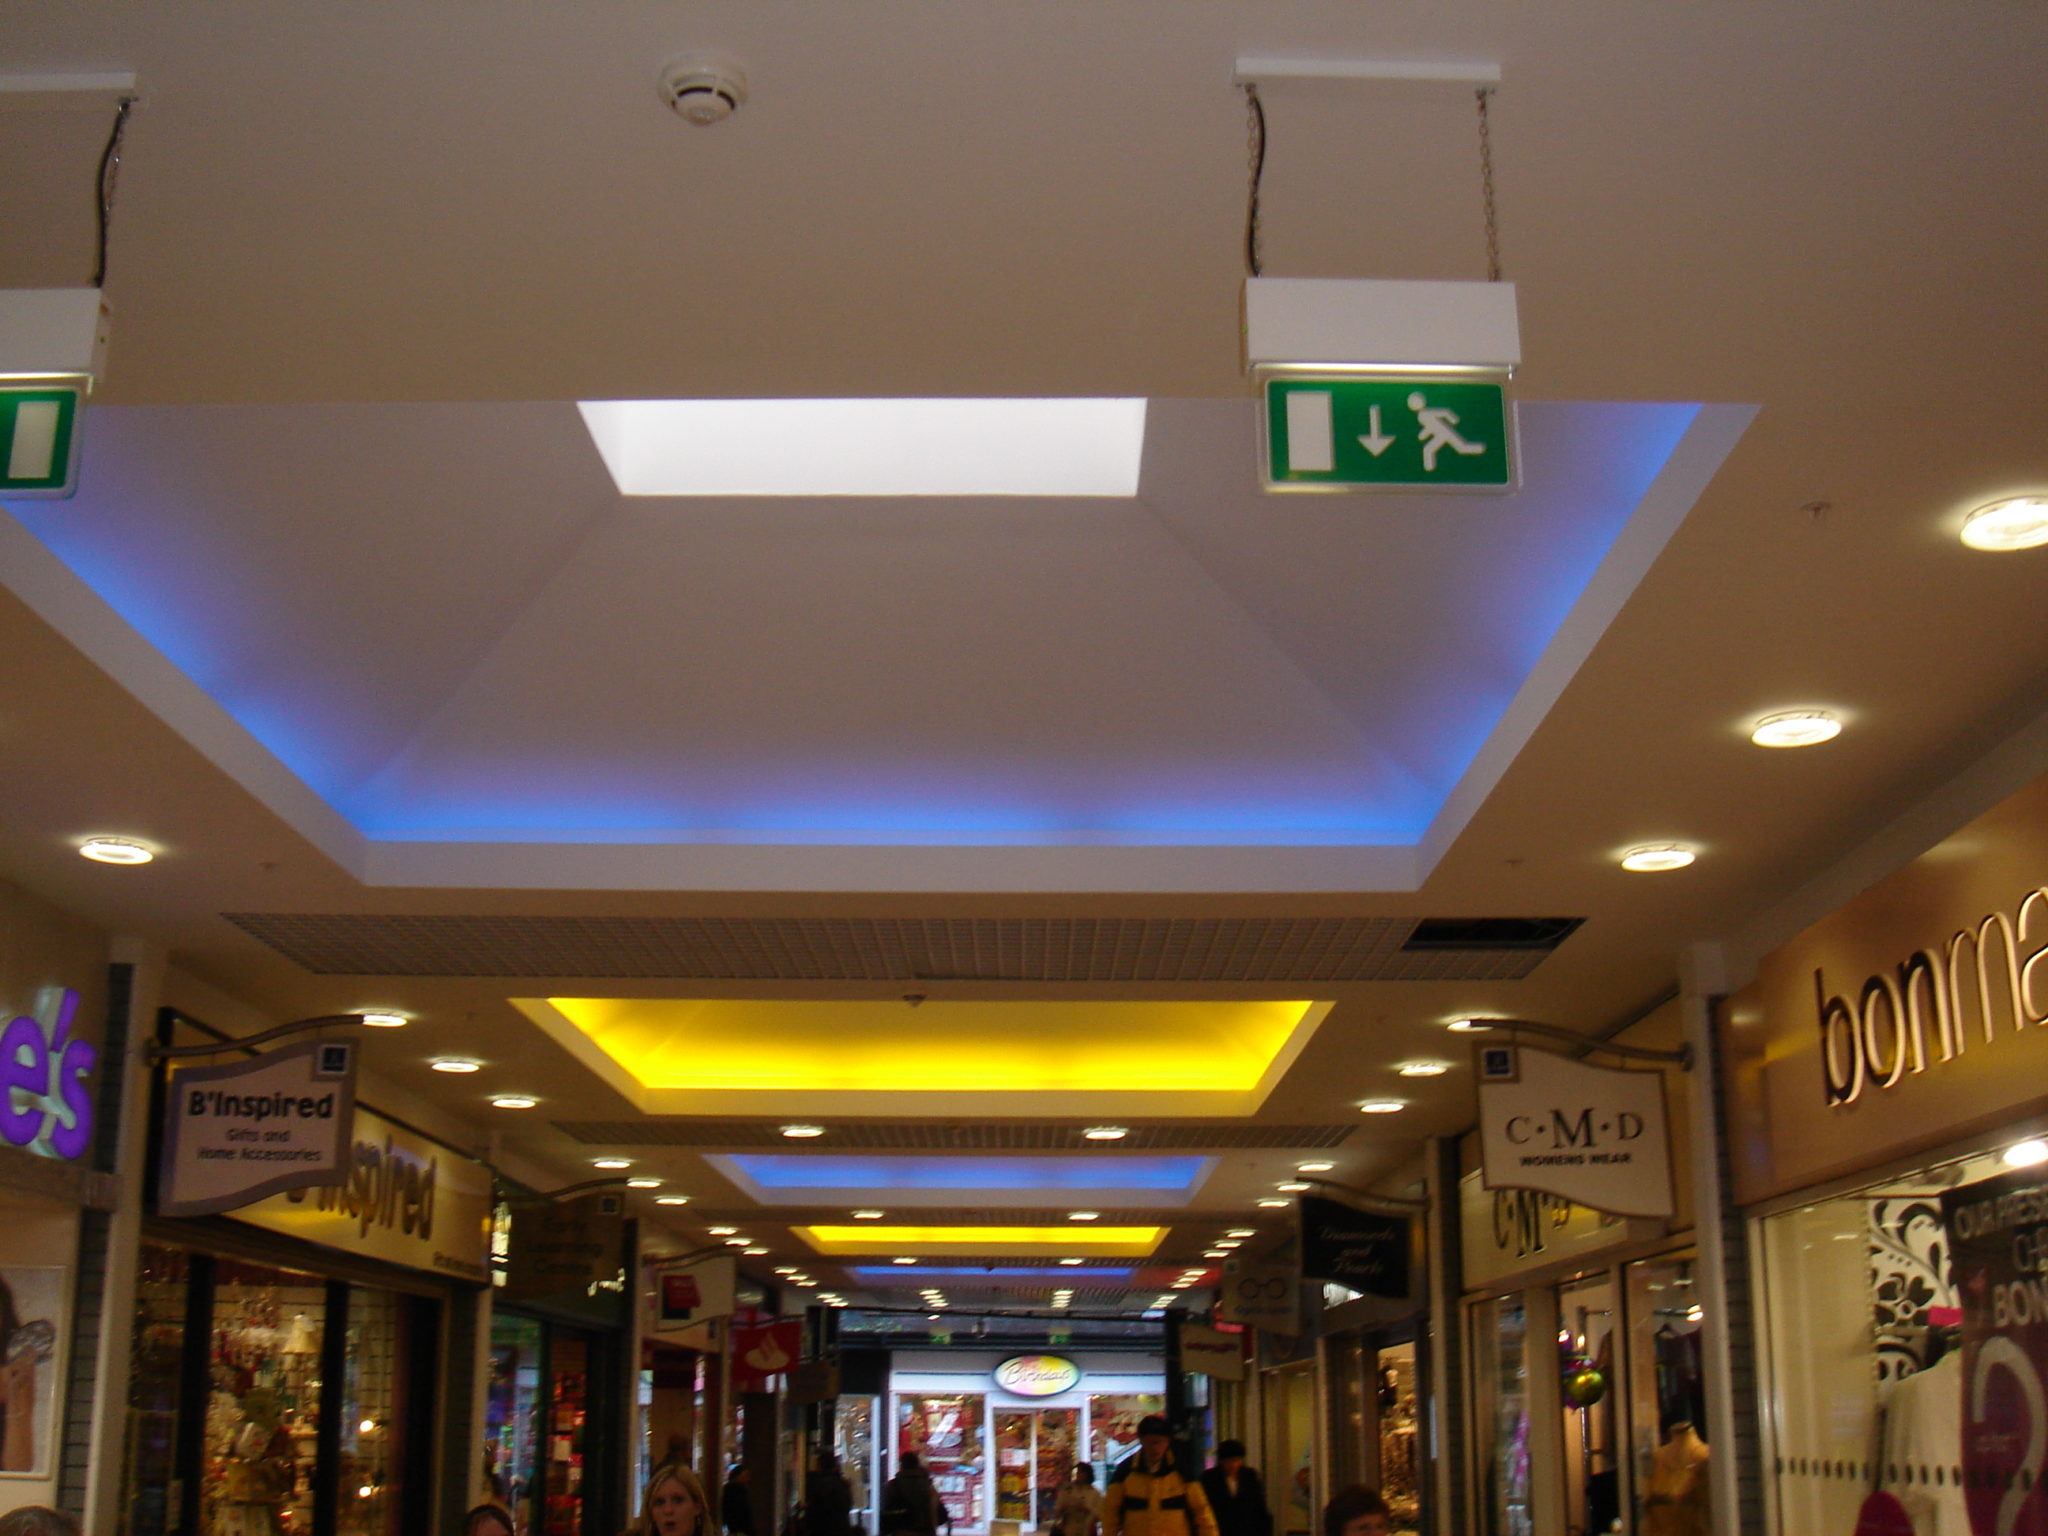 Shaped Feature Ceilings Or Curved Plasterboard Bulkheads